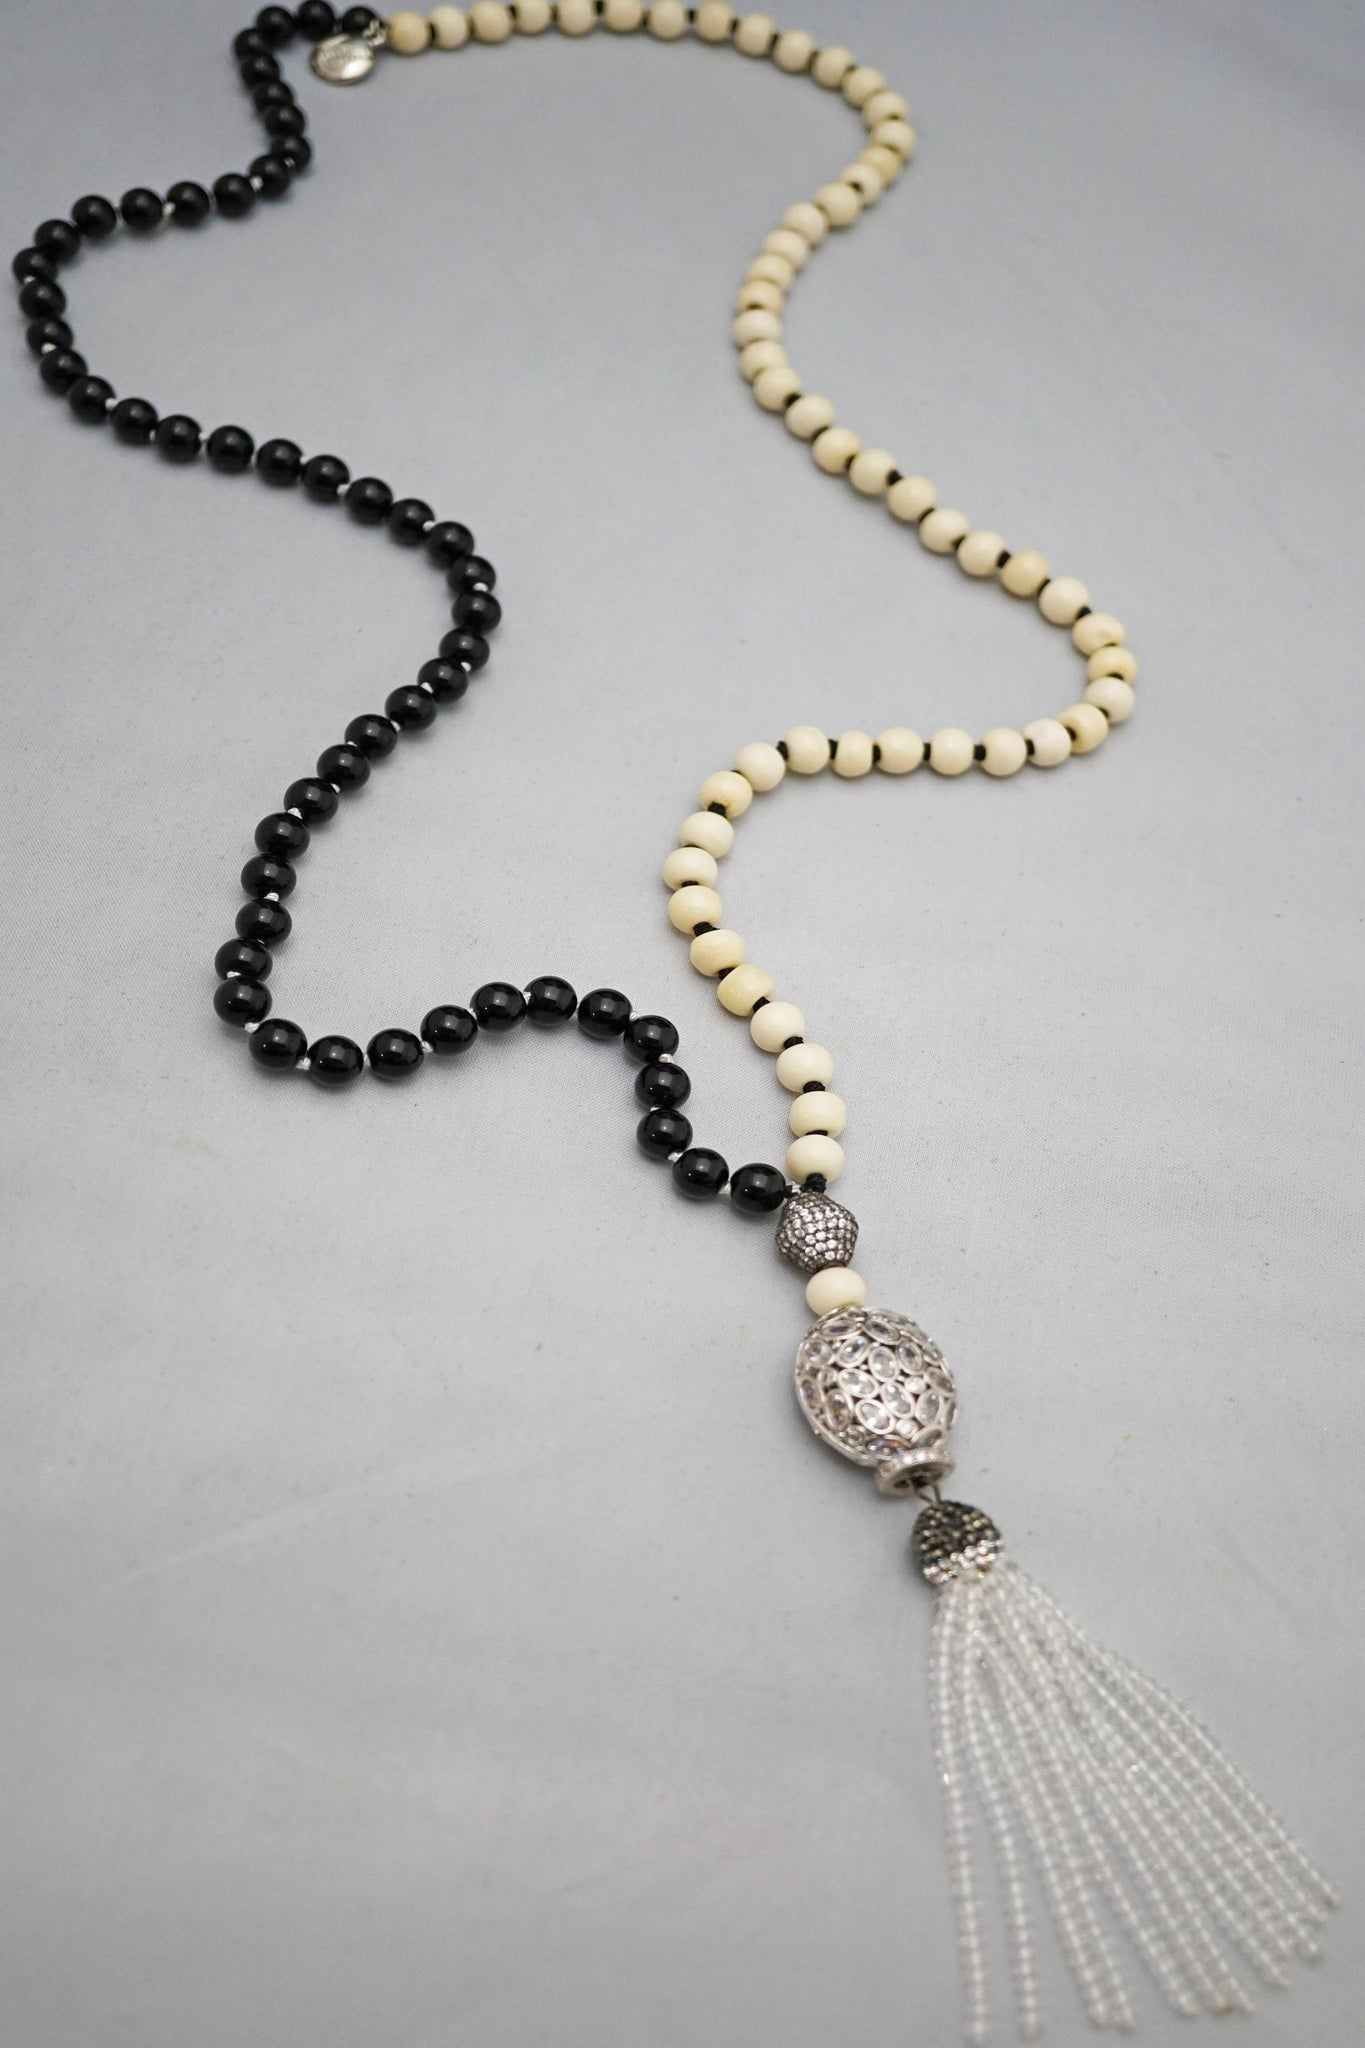 Duality Bone & Onyx Necklace w/Silver Pendant